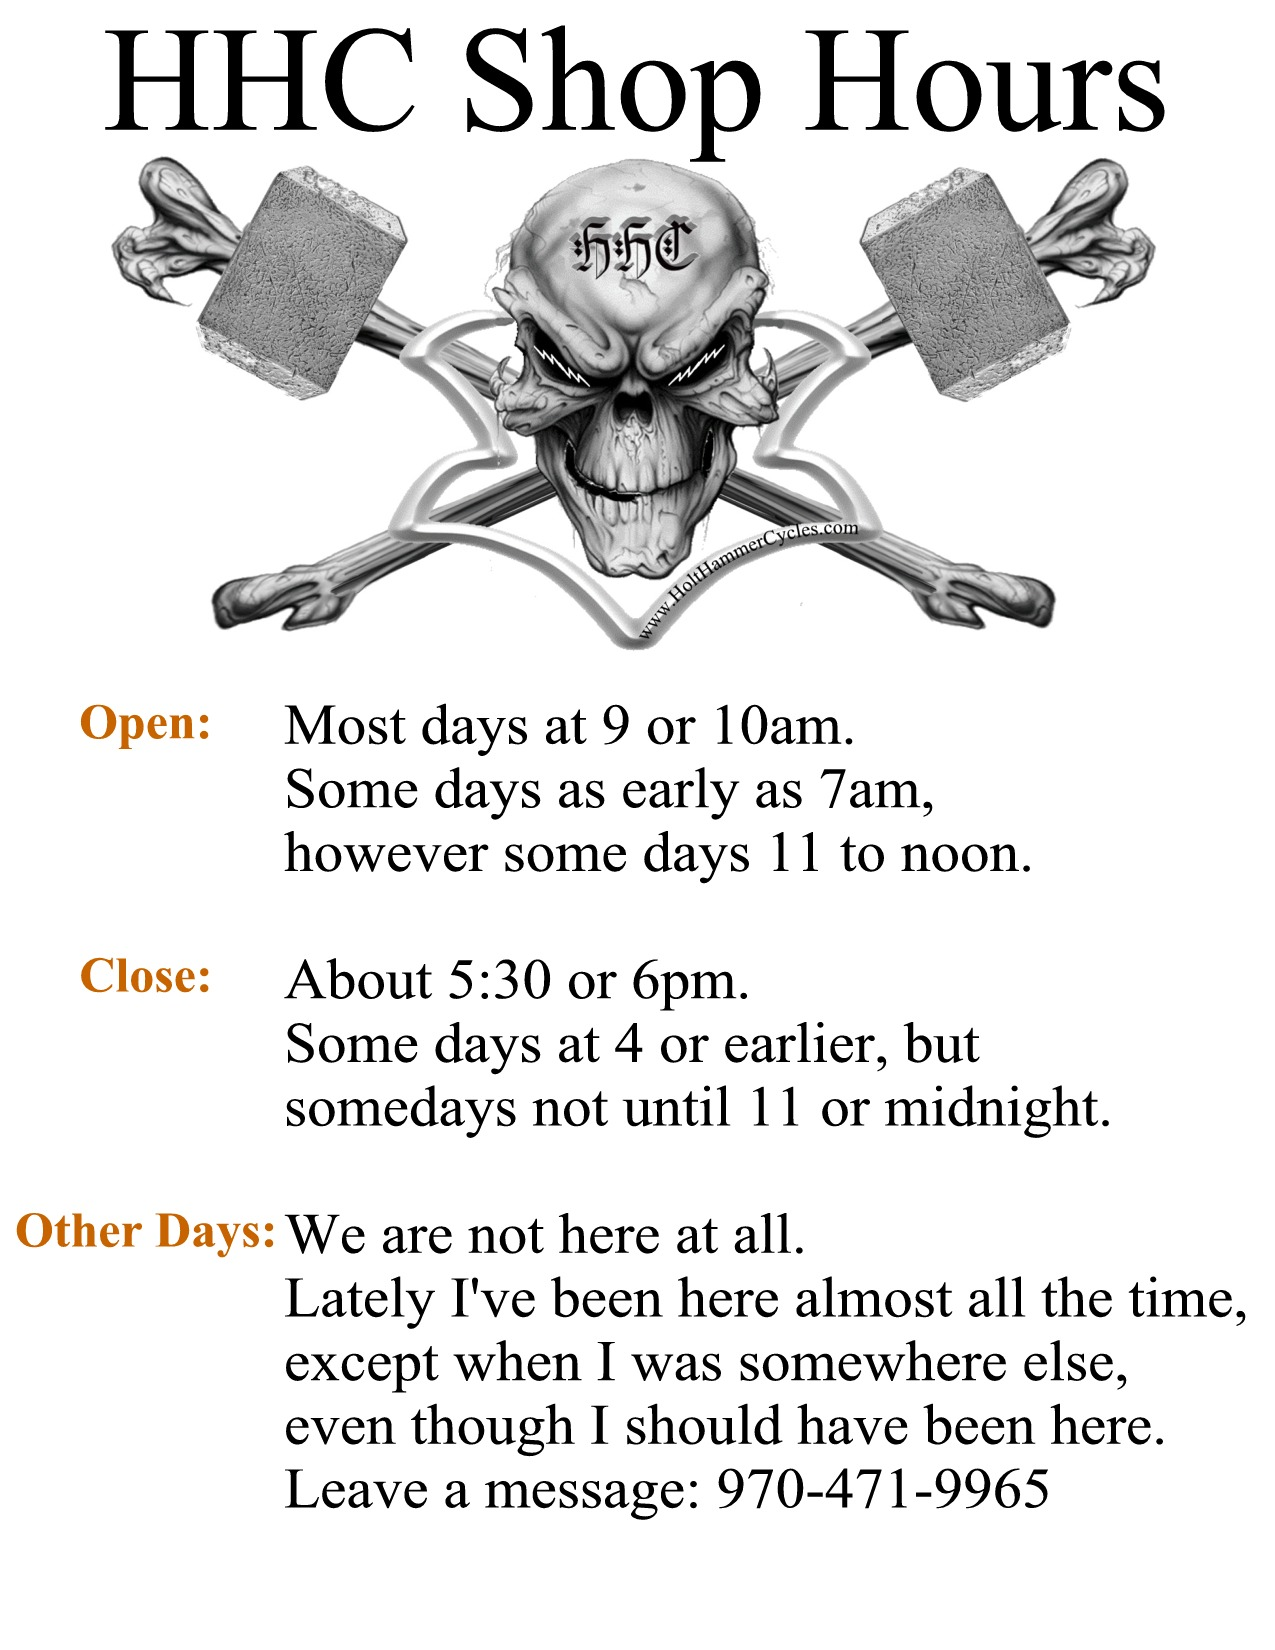 HHC Shop Hours